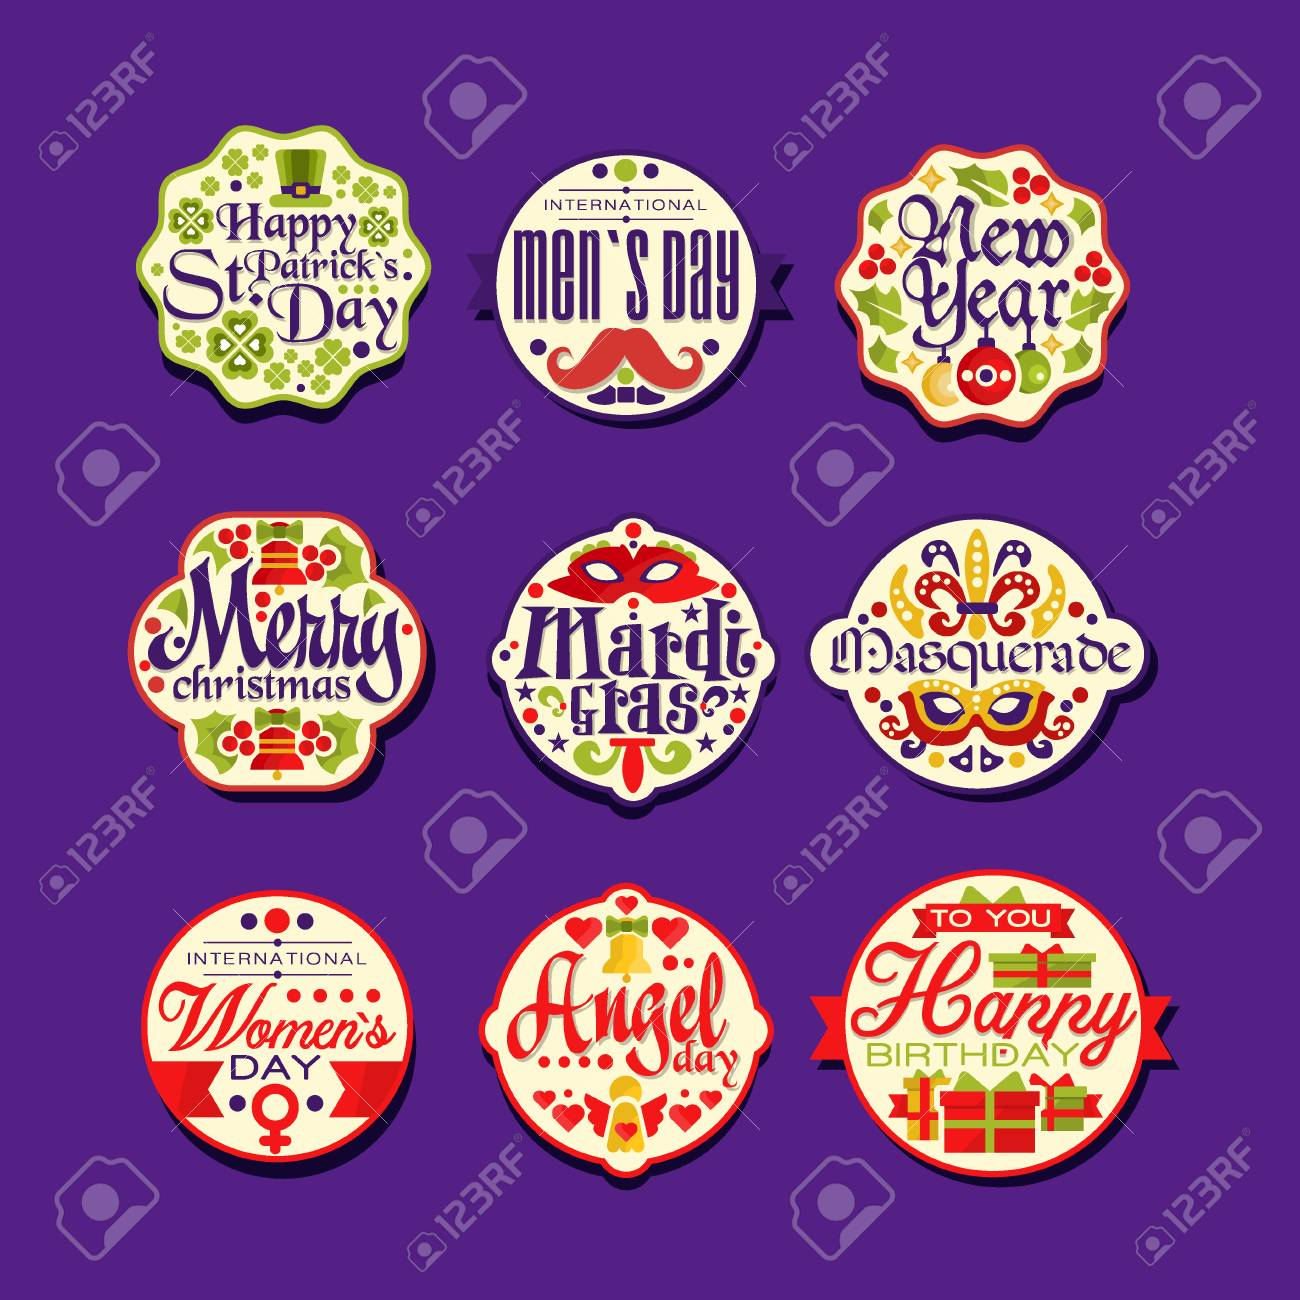 colorful label set for holiday retro design festive stickers with greetings merry christmas